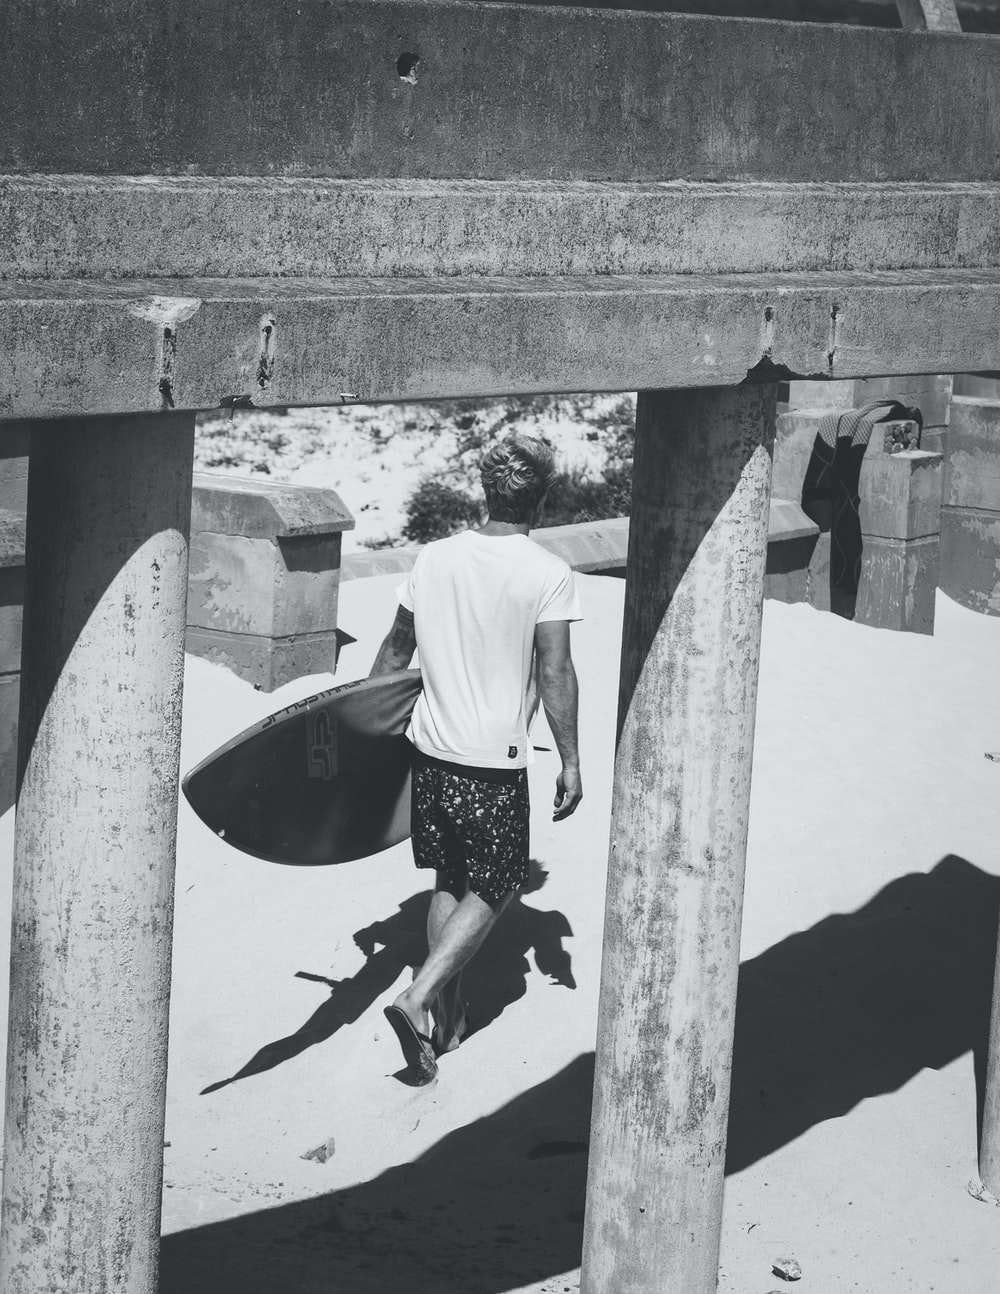 grayscale photography of man holding surf board